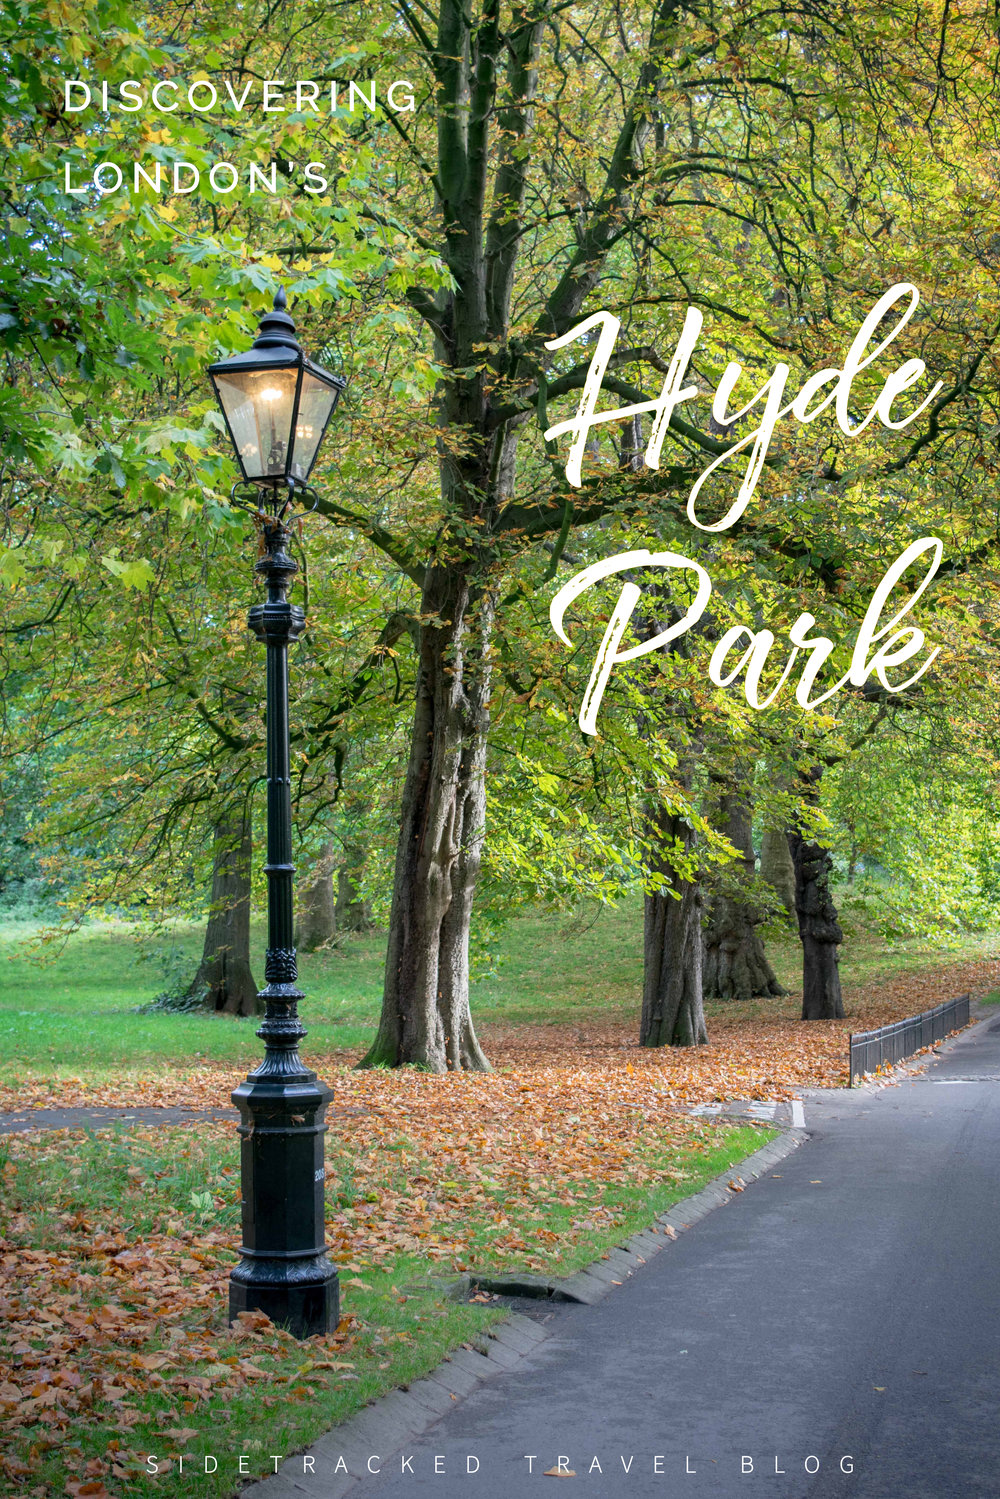 Whether you want to learn more about the Royals with a tour through Kensington Palace or if you simply want to people-watch from a bench along one of the wide avenues crisscrossing the park, there are plenty of things to do in London's Hyde Park.